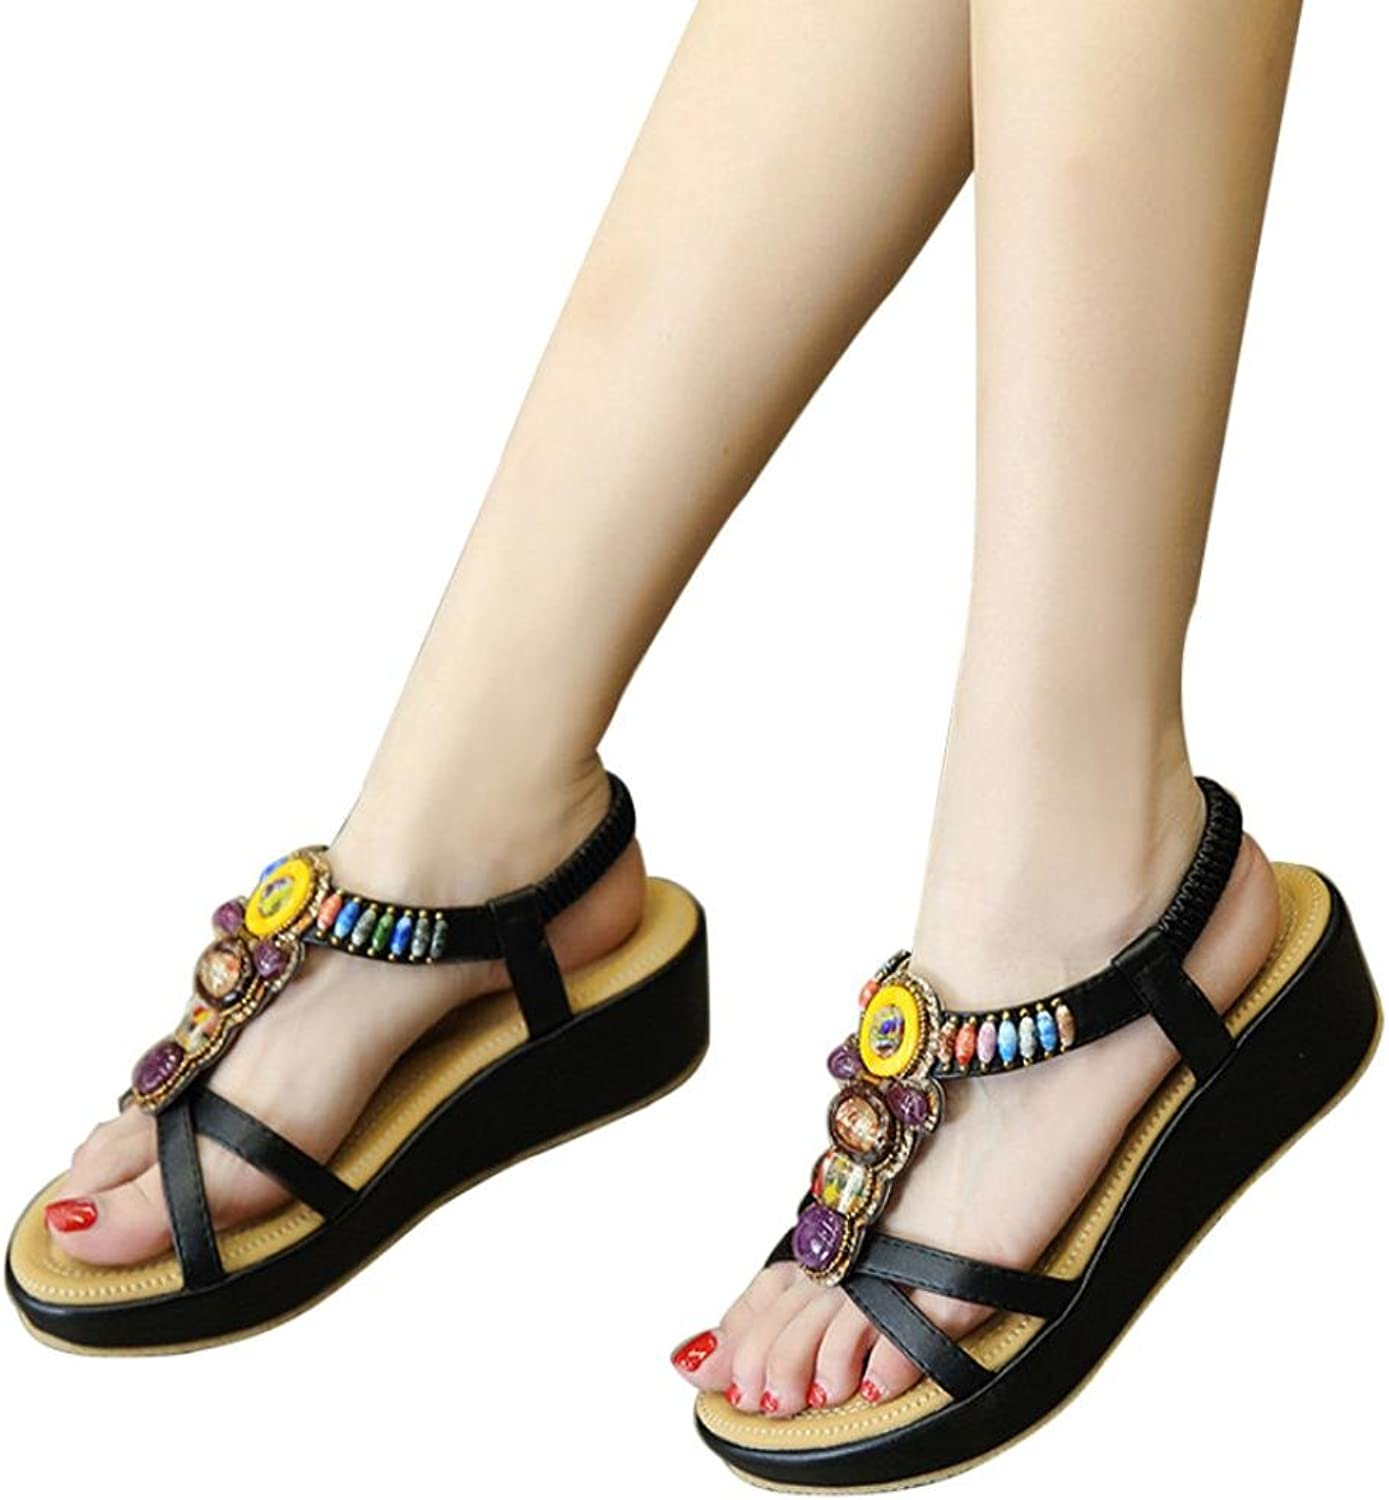 Fheaven (TM) Women Summer Sandals Bohemia colorful Beads shoes Wedges Middle Platfrom Heel Sandals